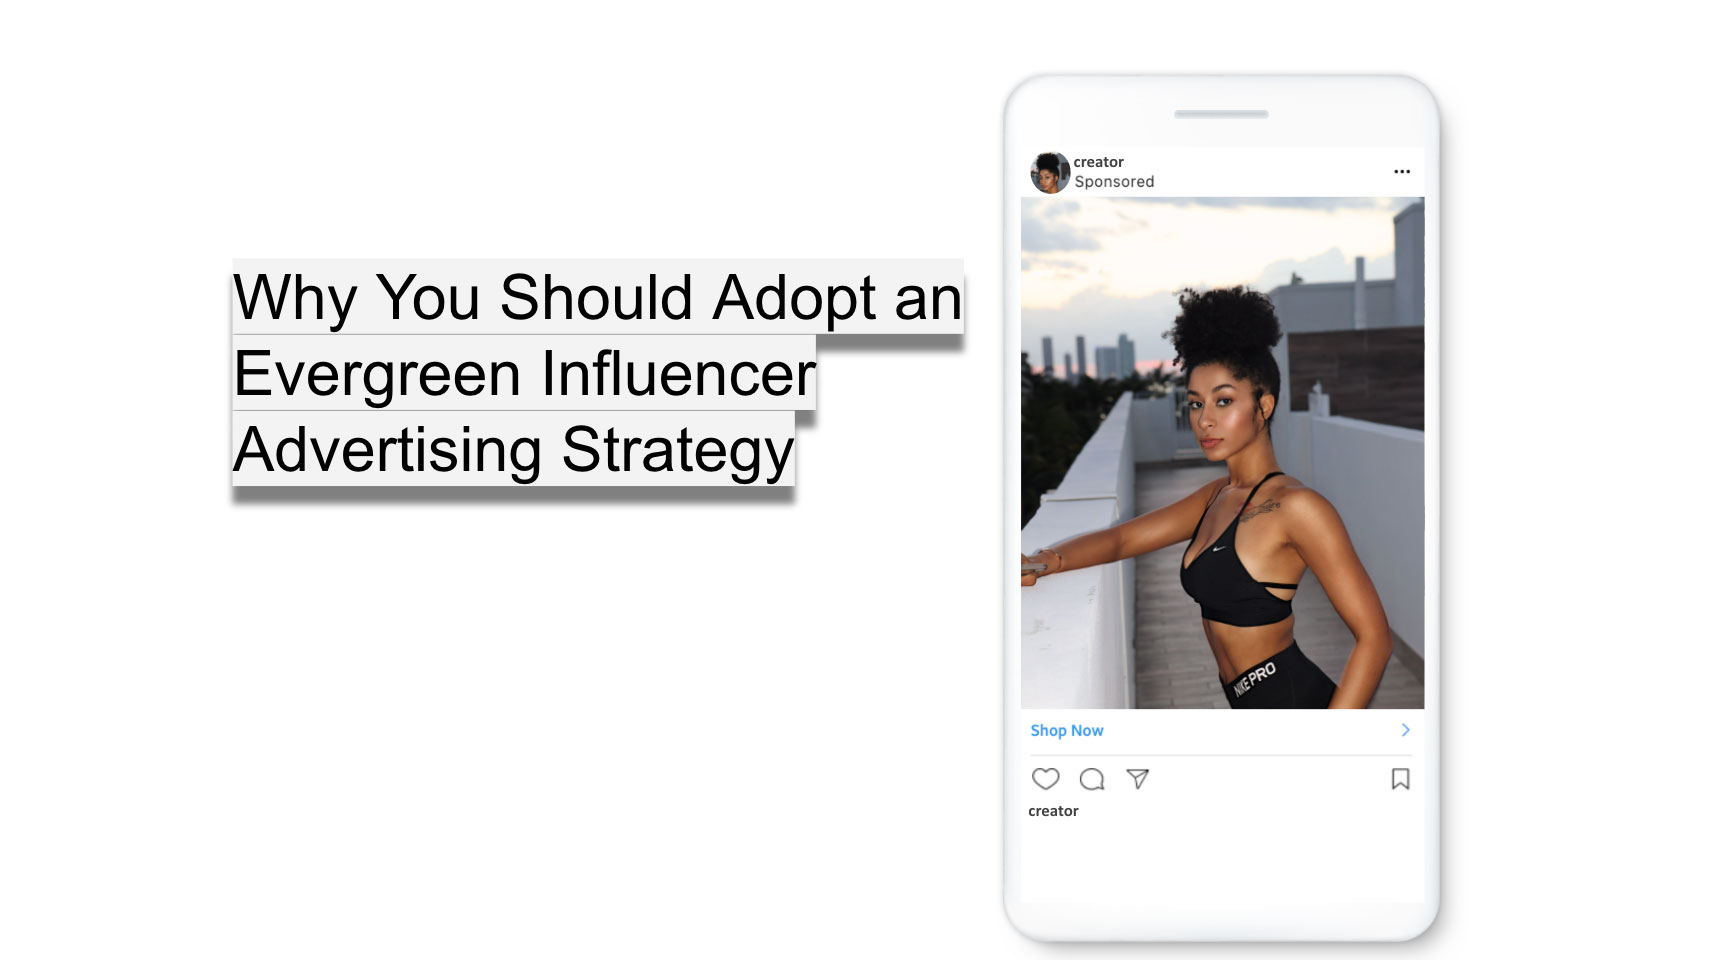 Influencer ads are one of the most impactful ways to drive sales, increase brand awareness, and improve influencer relationships.